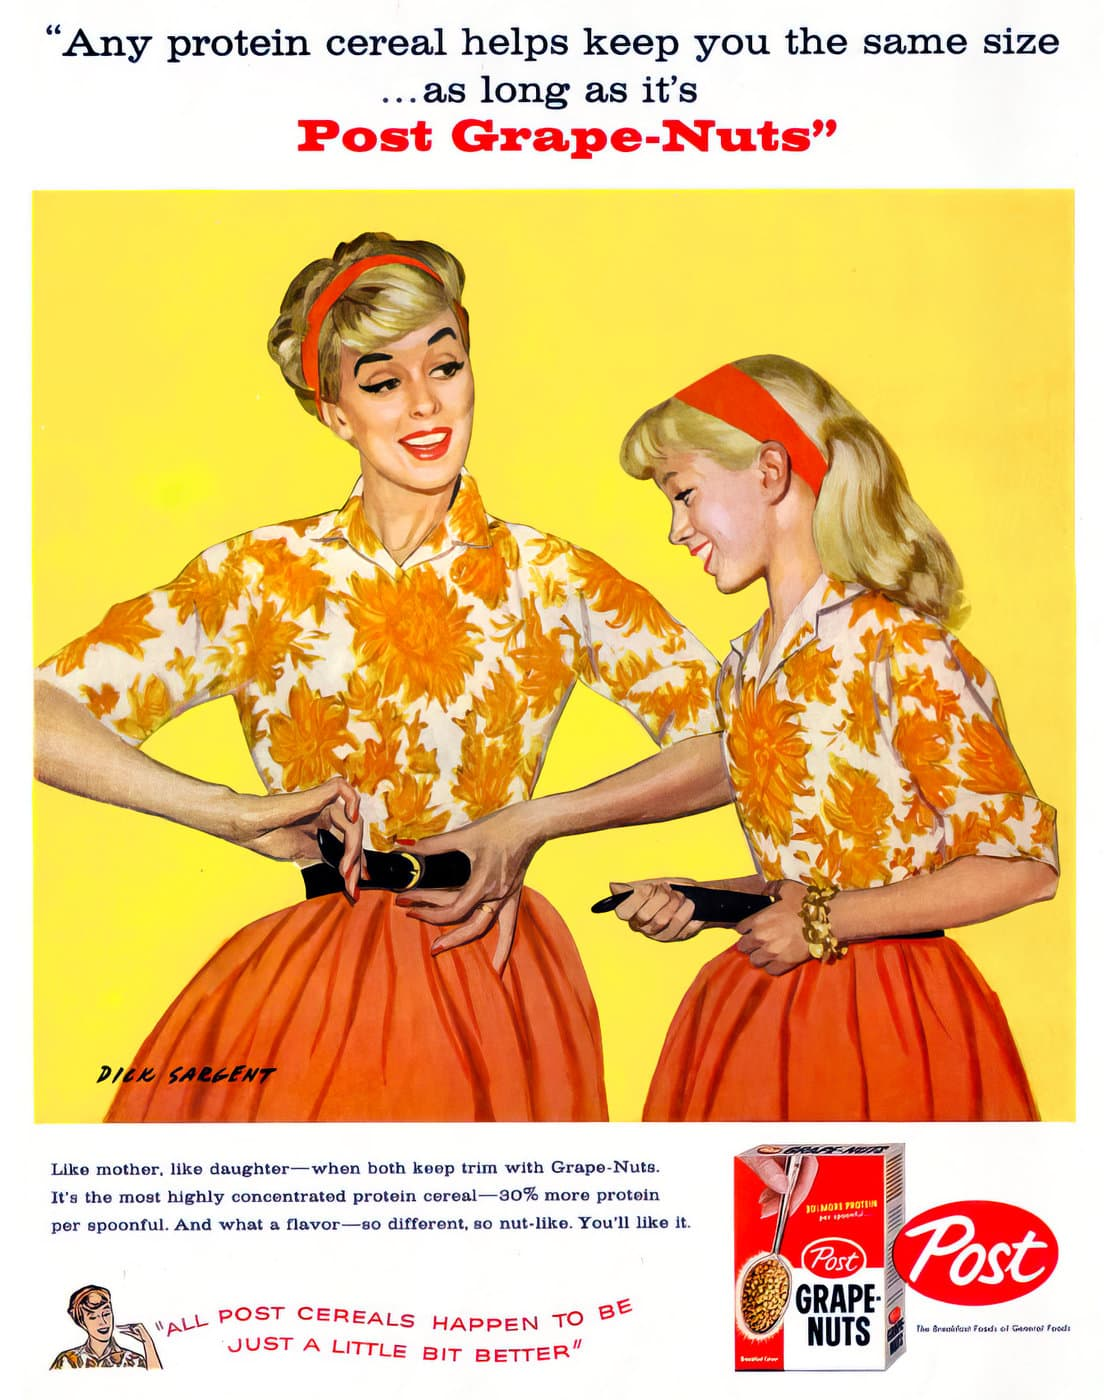 Vintage 1950s dieting with Post Grape Nuts cereal